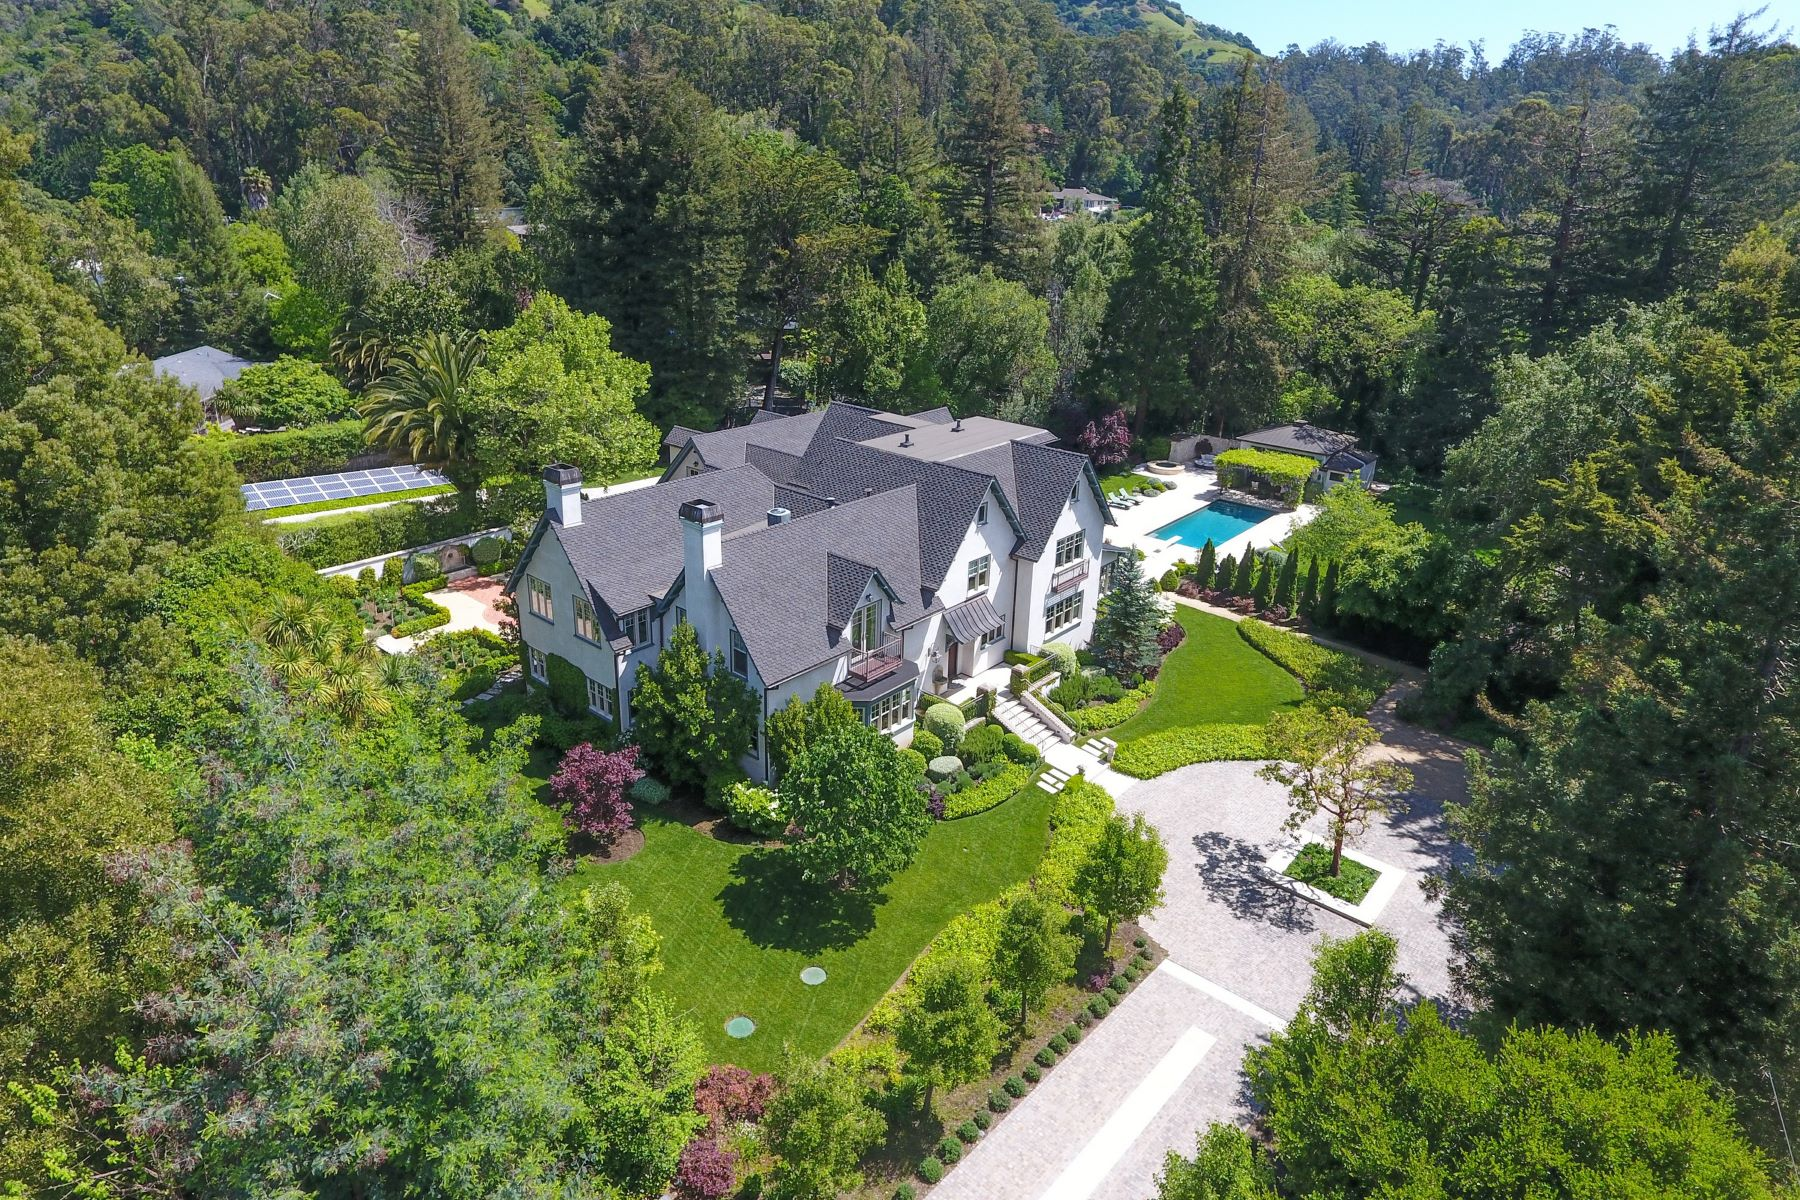 Single Family Home for Sale at Historic Grandeur Meets Contemporary Elegance 120 Mountain View Ave San Rafael, California, 94901 United States